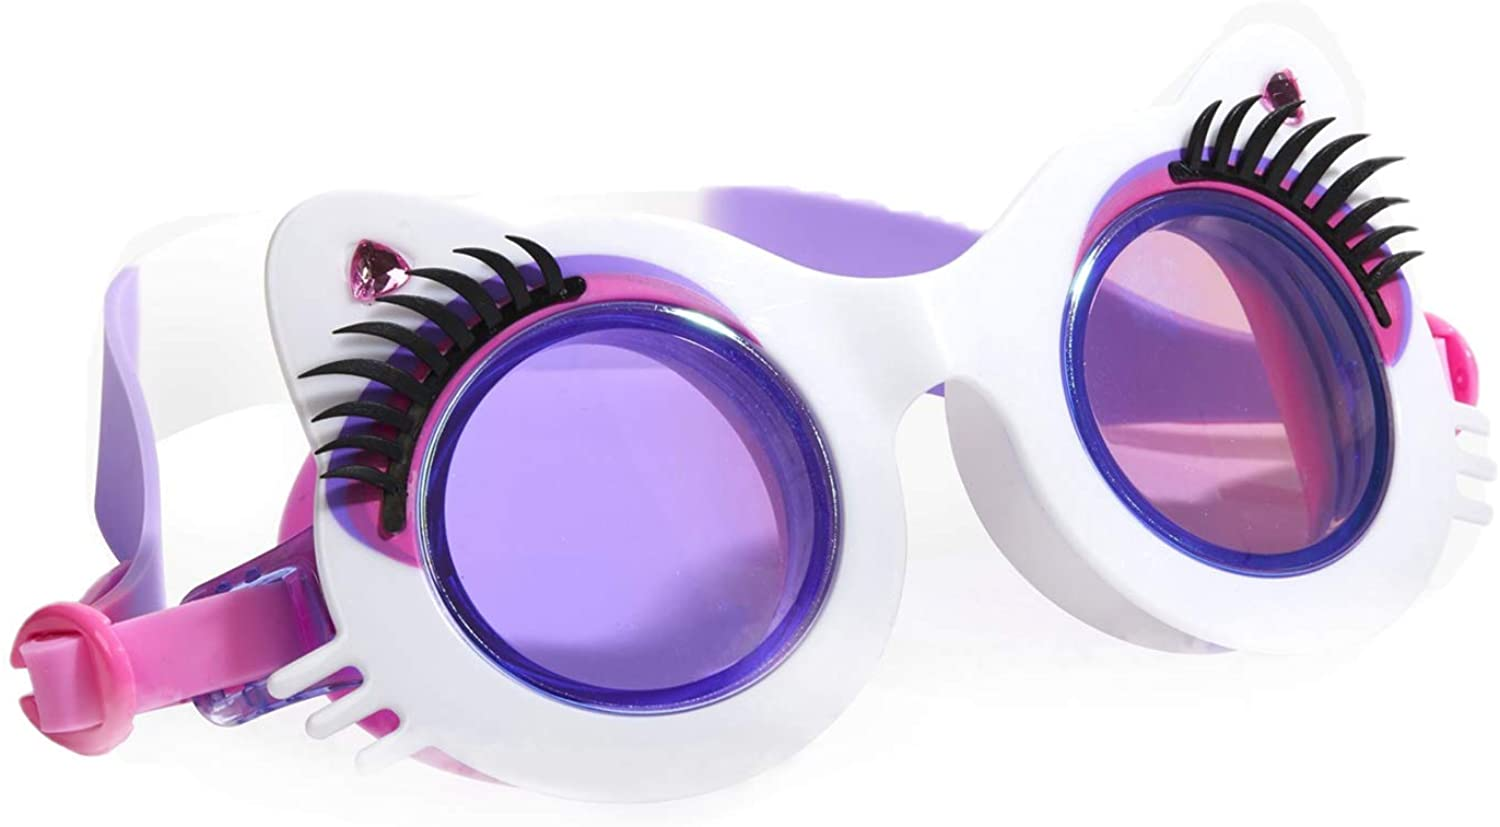 Bling 2O Kids Swimming Goggles - Cat Whisker and Eyelash Goggles for Girls - Ages 8+ - Anti Fog, No Leak, Non Slip, UV Protection - Hard Travel Case - Lead & Latex Free (Pawdry Hepburn Whiskers White)